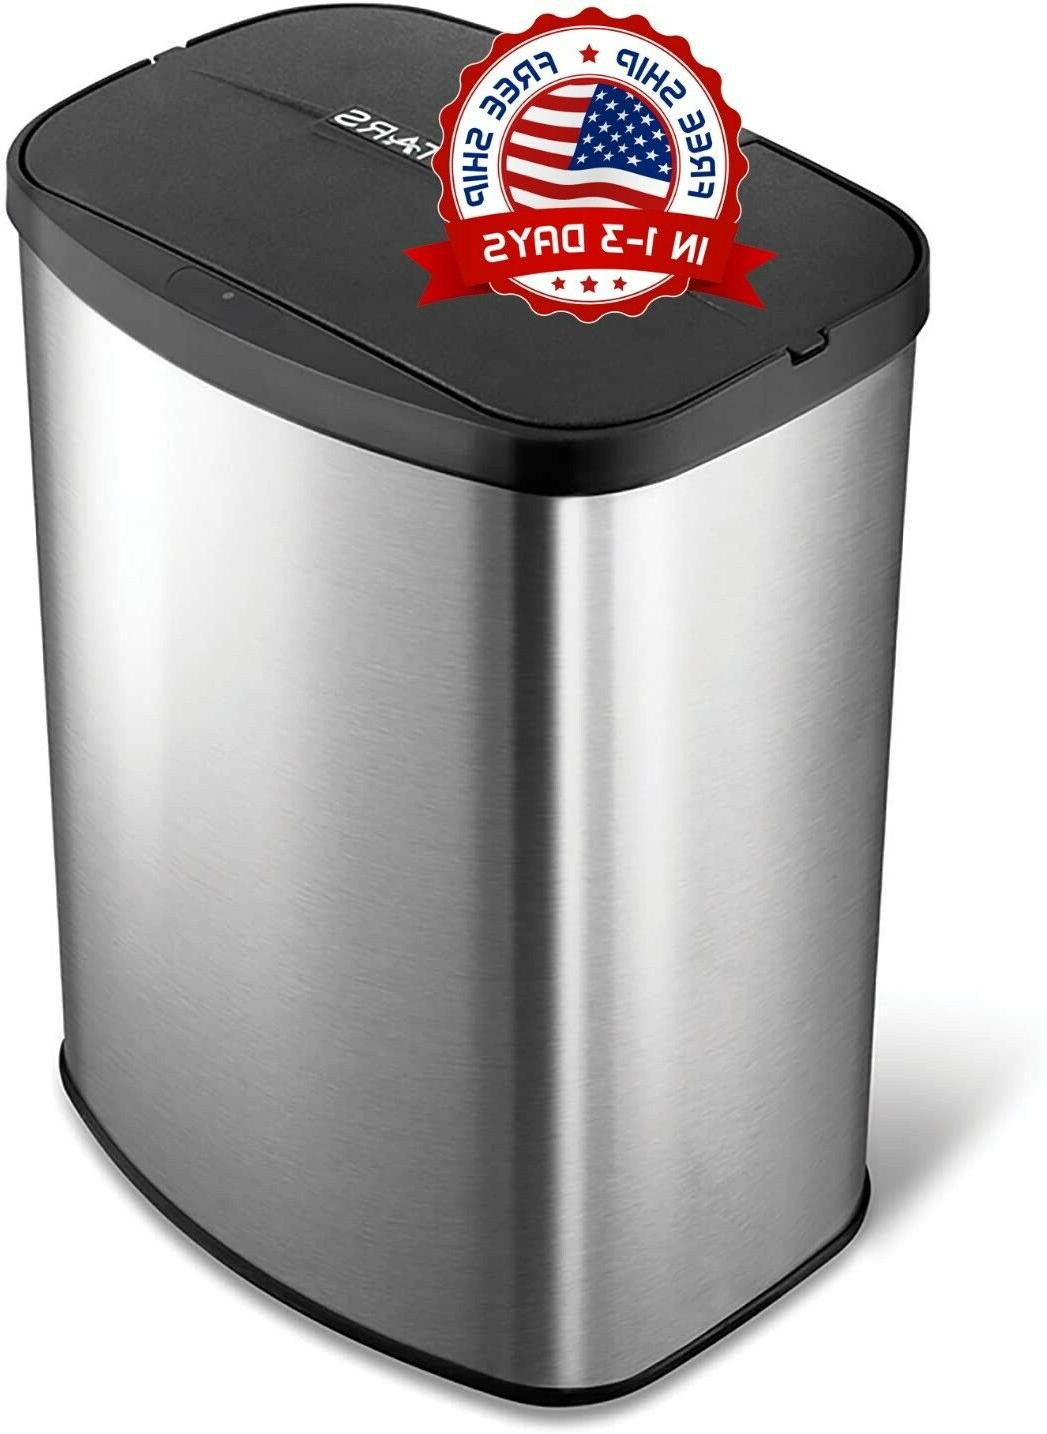 motion sensor stainless steel trashcan touchless basura